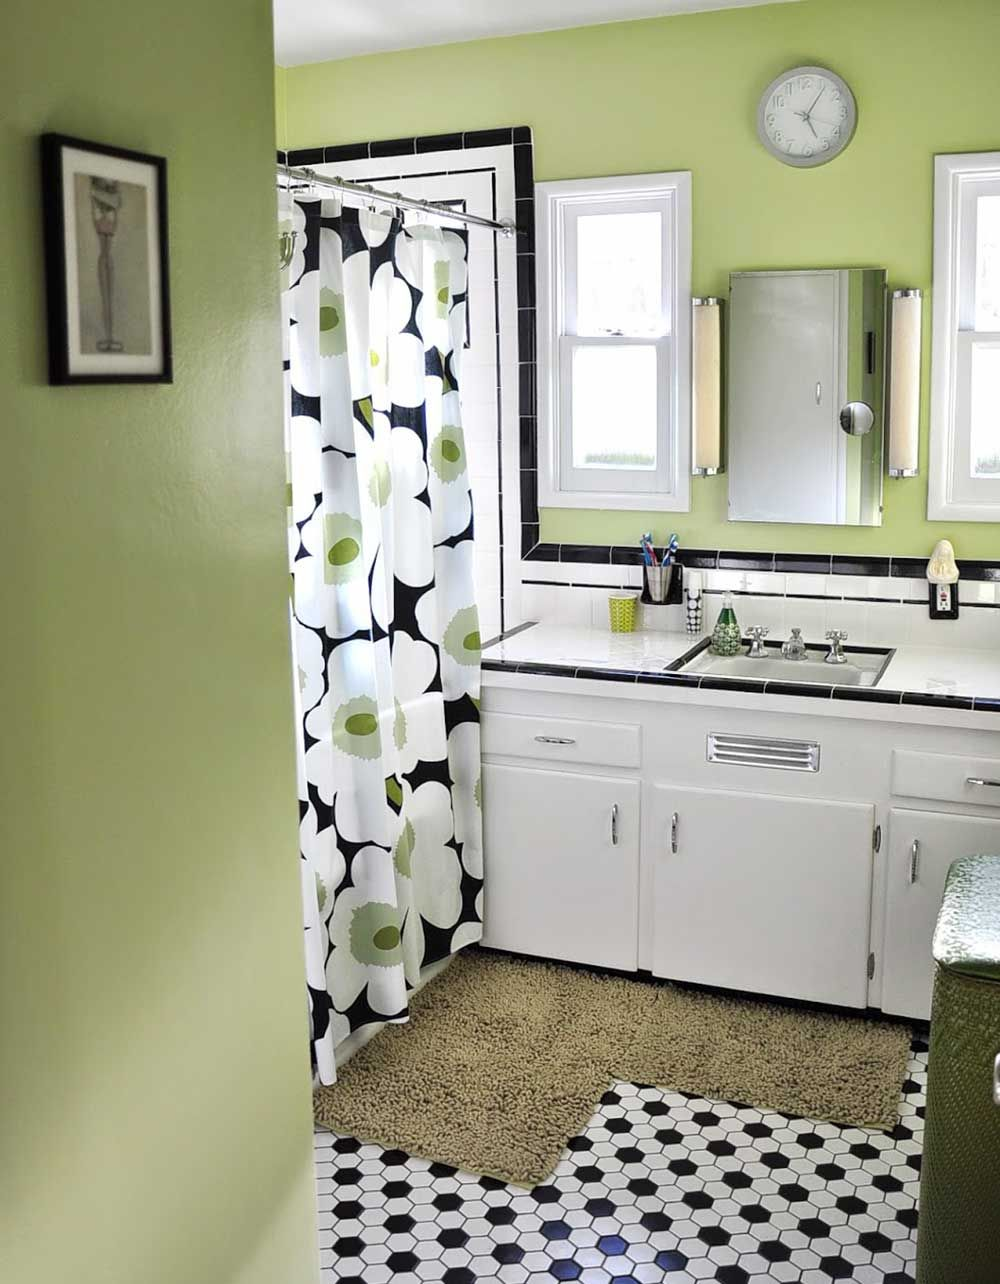 Black and white tile bathrooms - done 6 different ways | What s ...